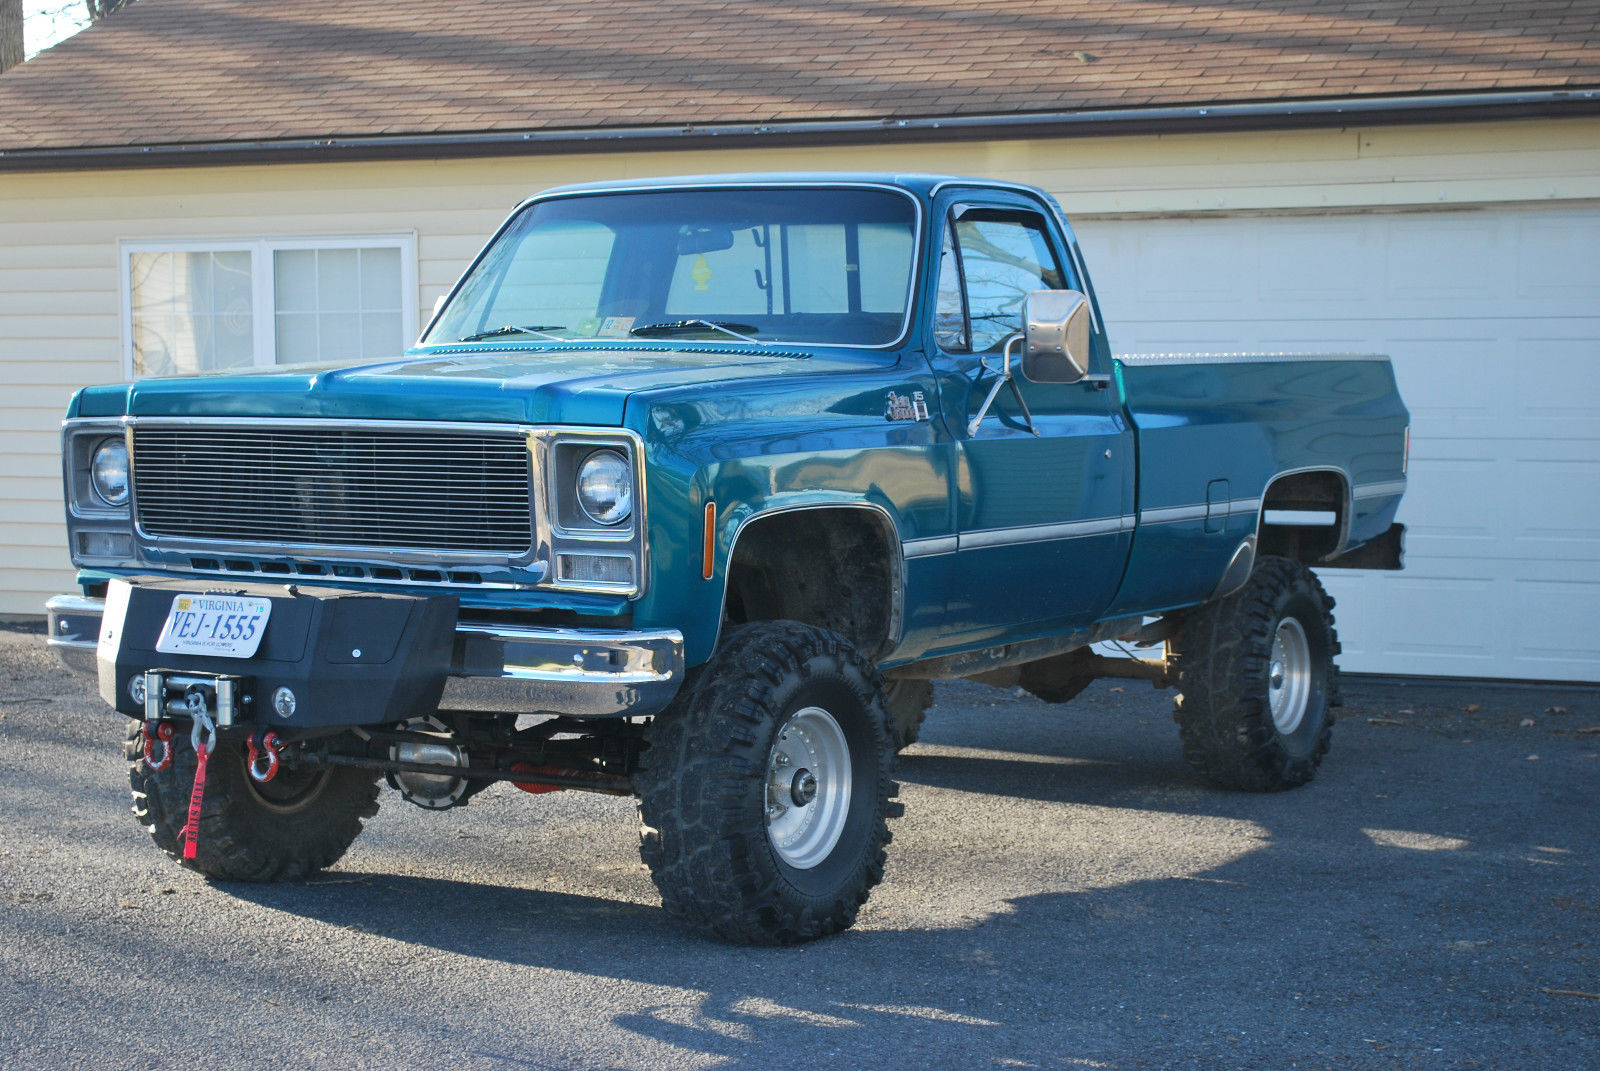 1979 gmc sierra 15 4x4 dry western high desert survivor chevy k10